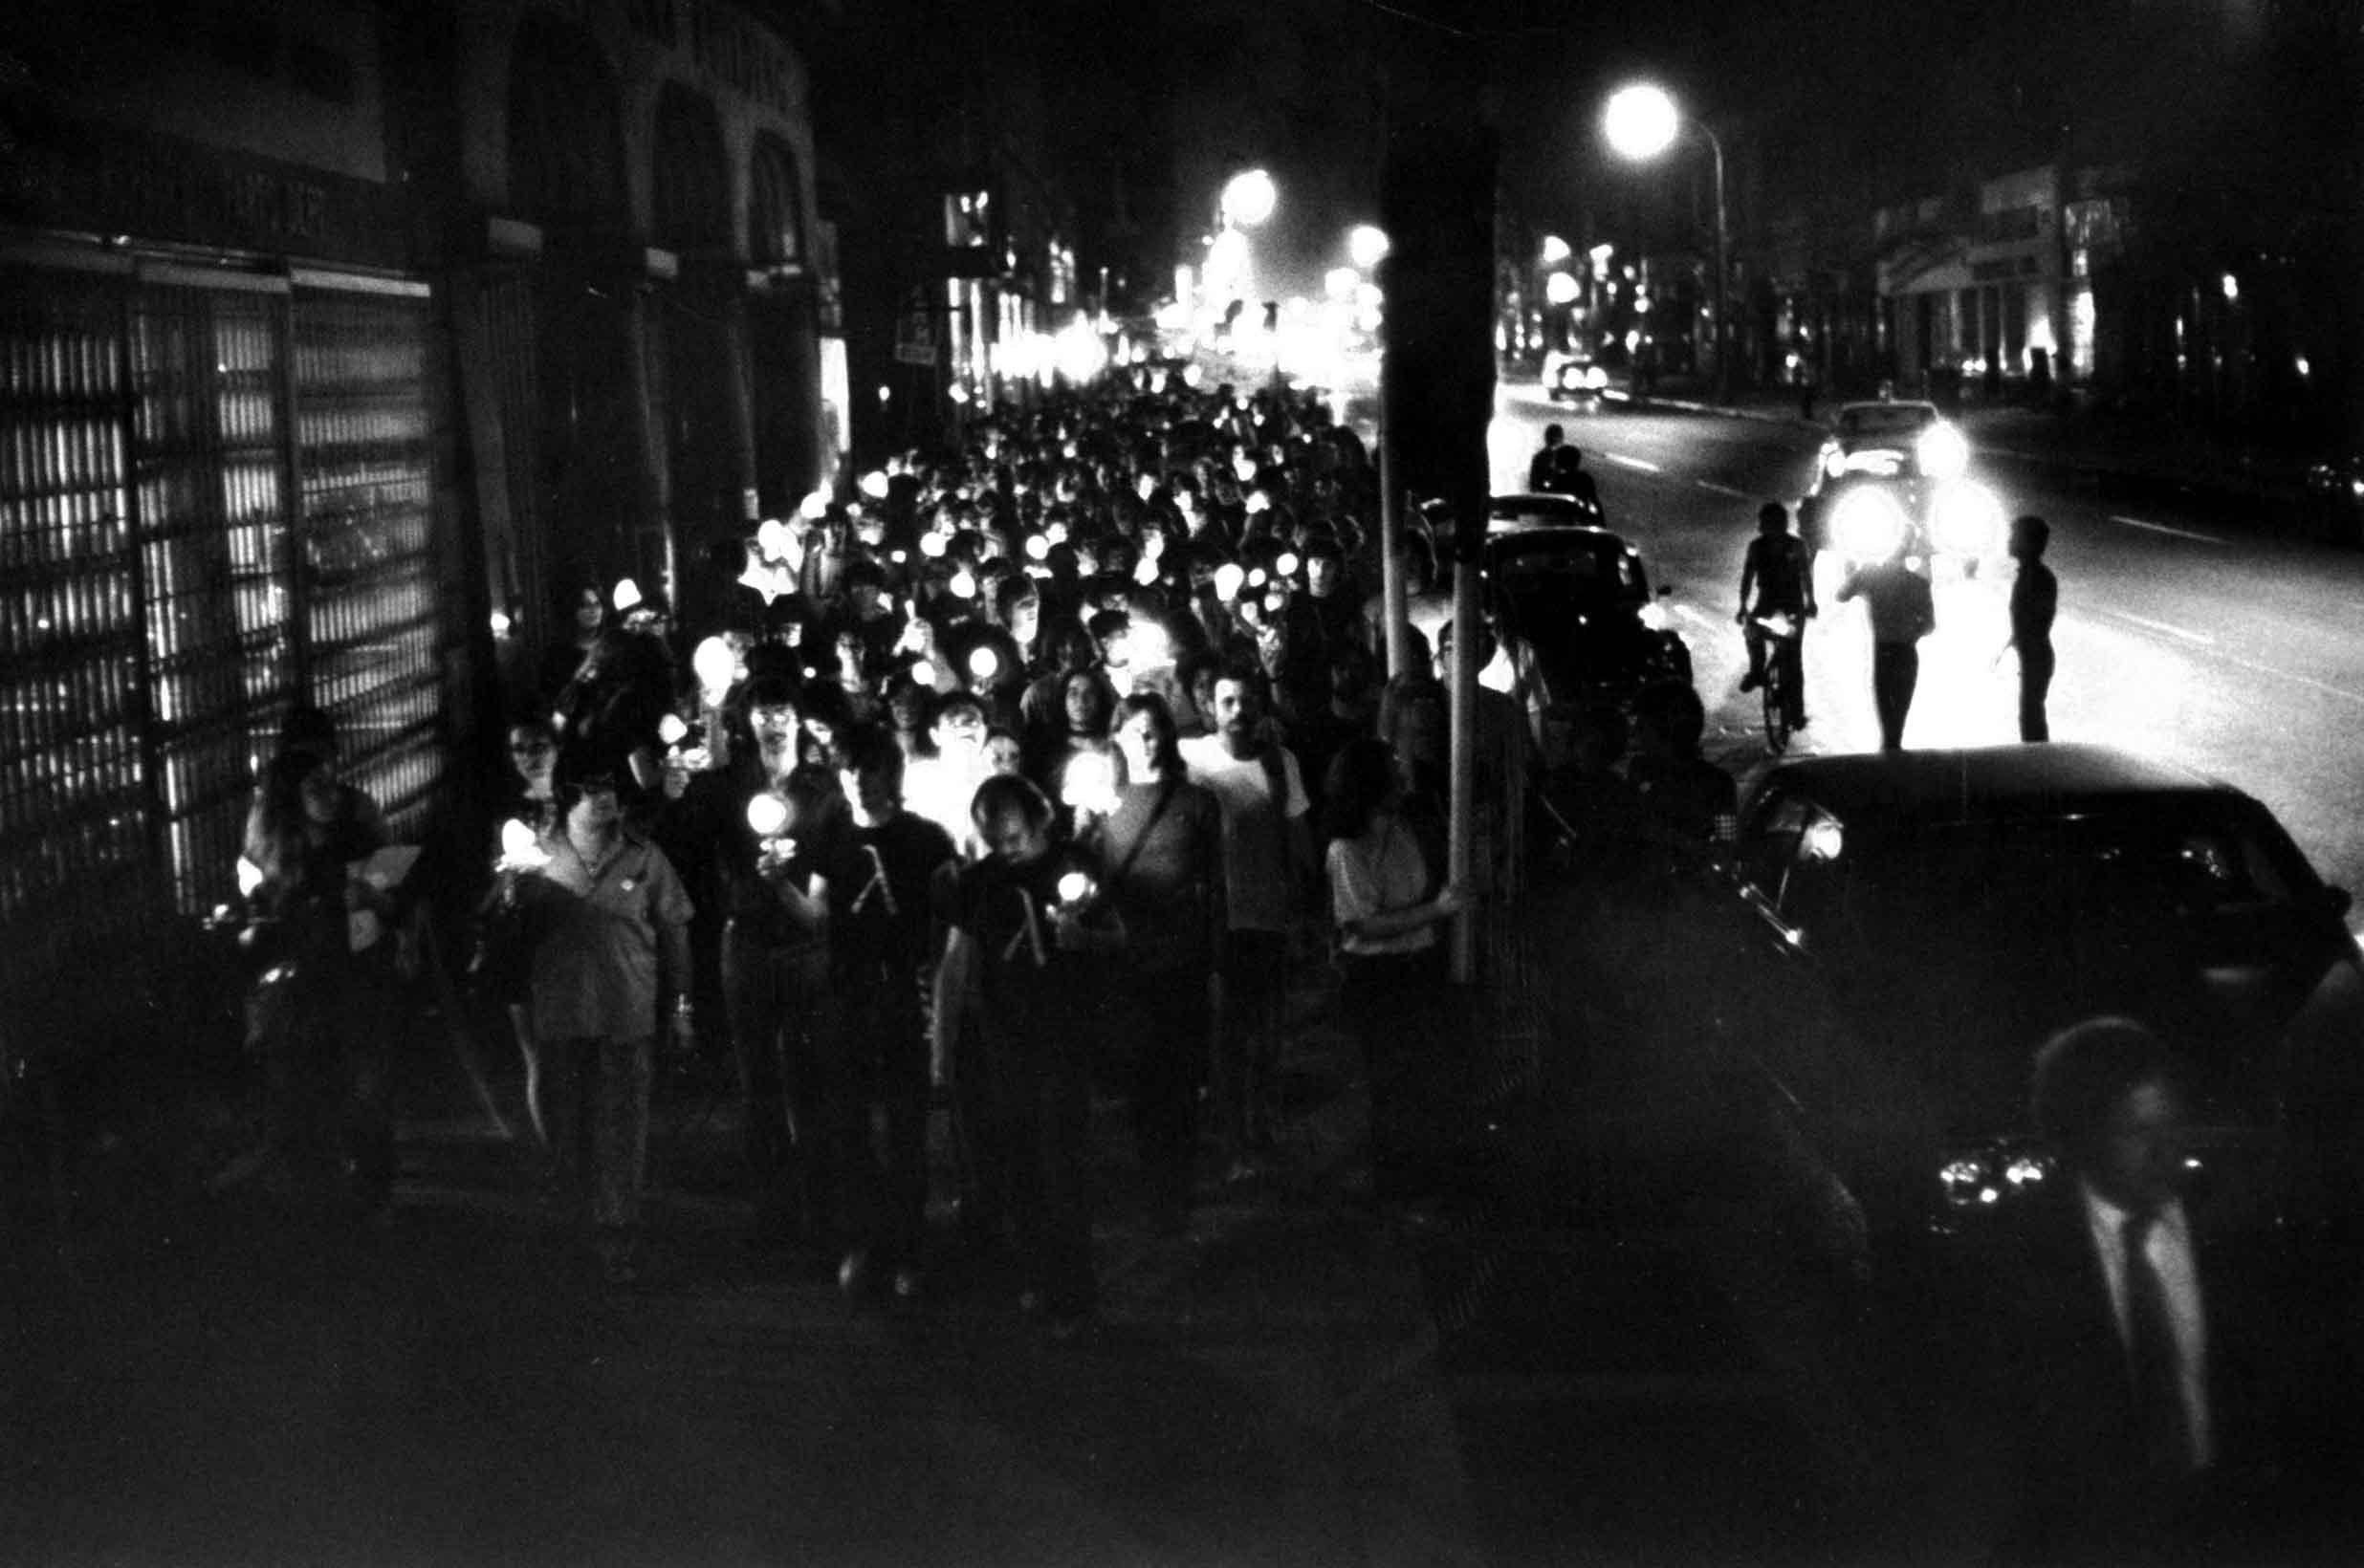 <b>Caption from LIFE</b> In commemoration of the 1969 Stonewall riots in Greenwich Village, militants this year designated the last week in June as Gay Liberation Week and celebrated with a candlelight parade. The parade involved 300 male and female homosexuals, who marched without incident two miles from Gay Activists headquarters to a park near City Hall.